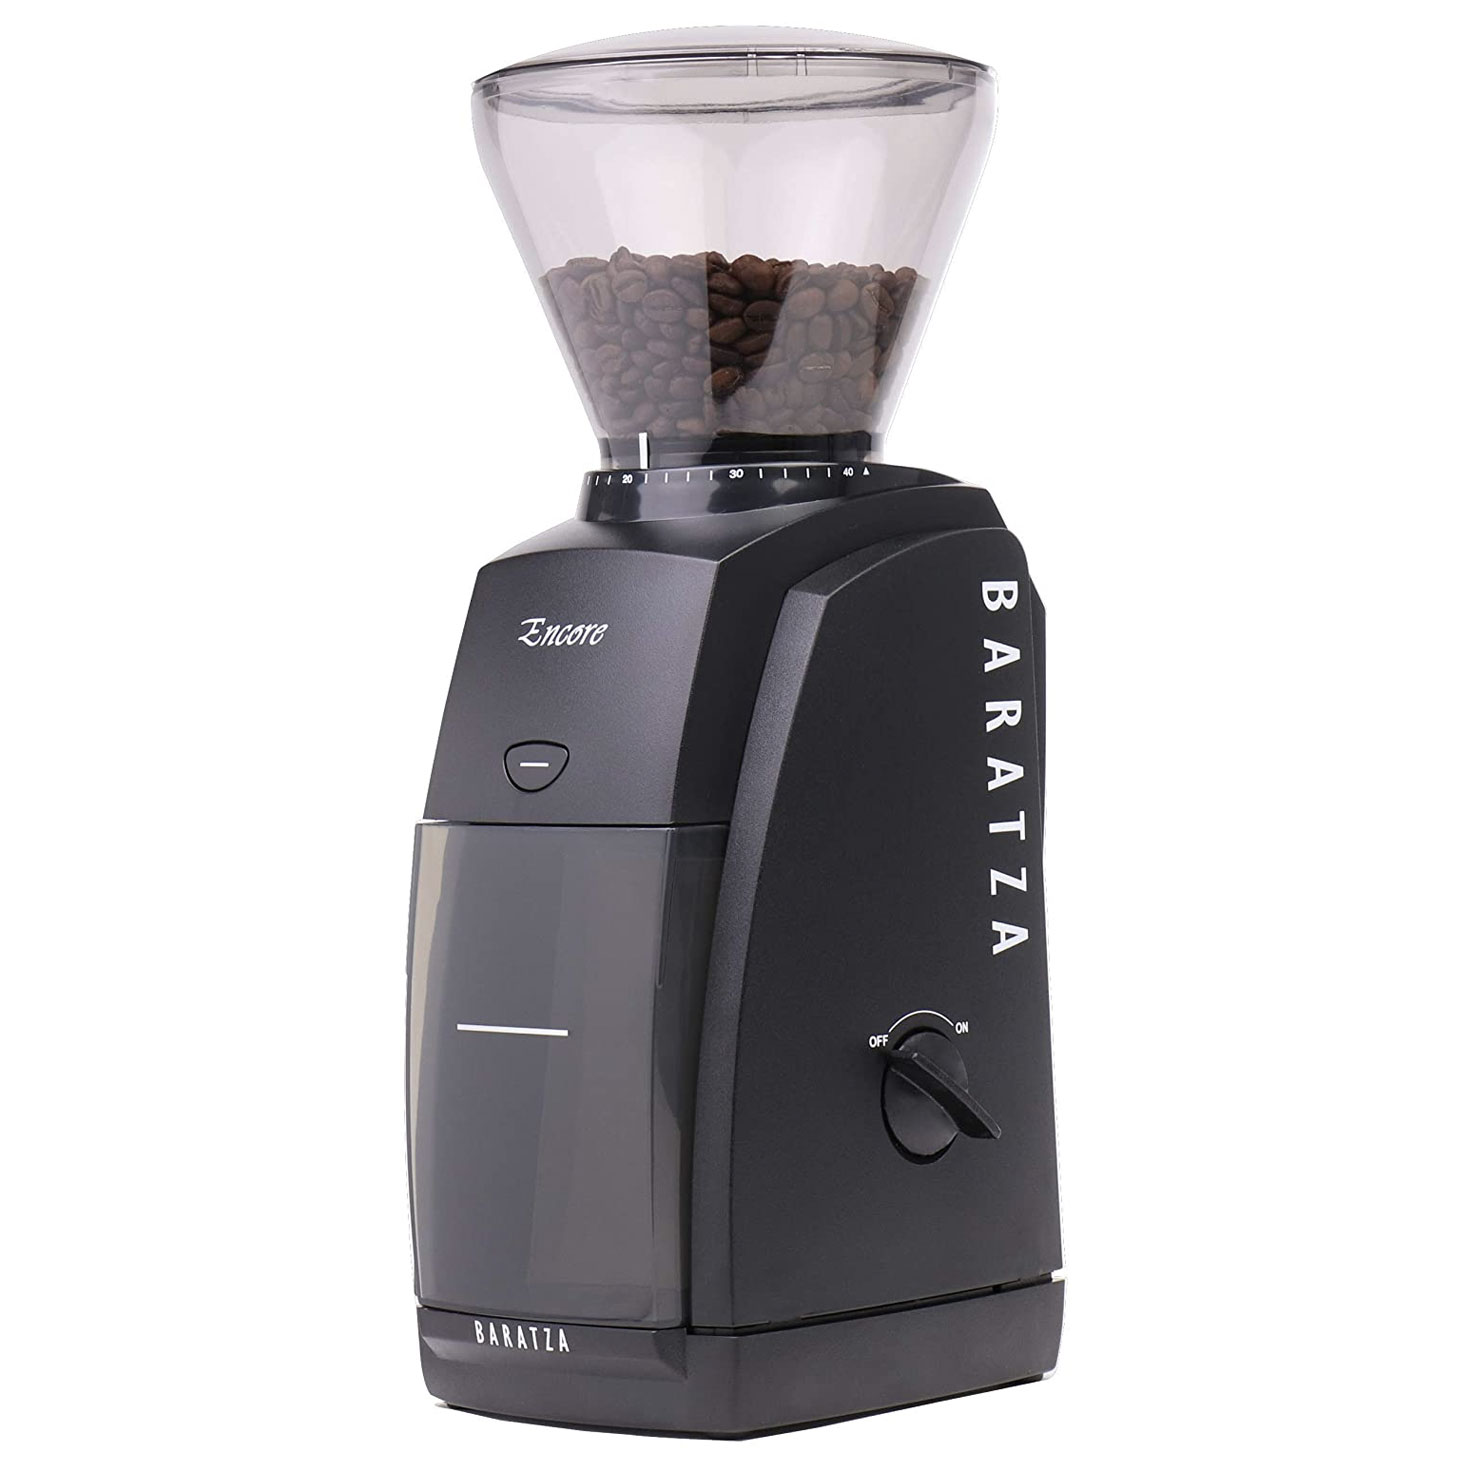 black coffee grinder with beans at the top